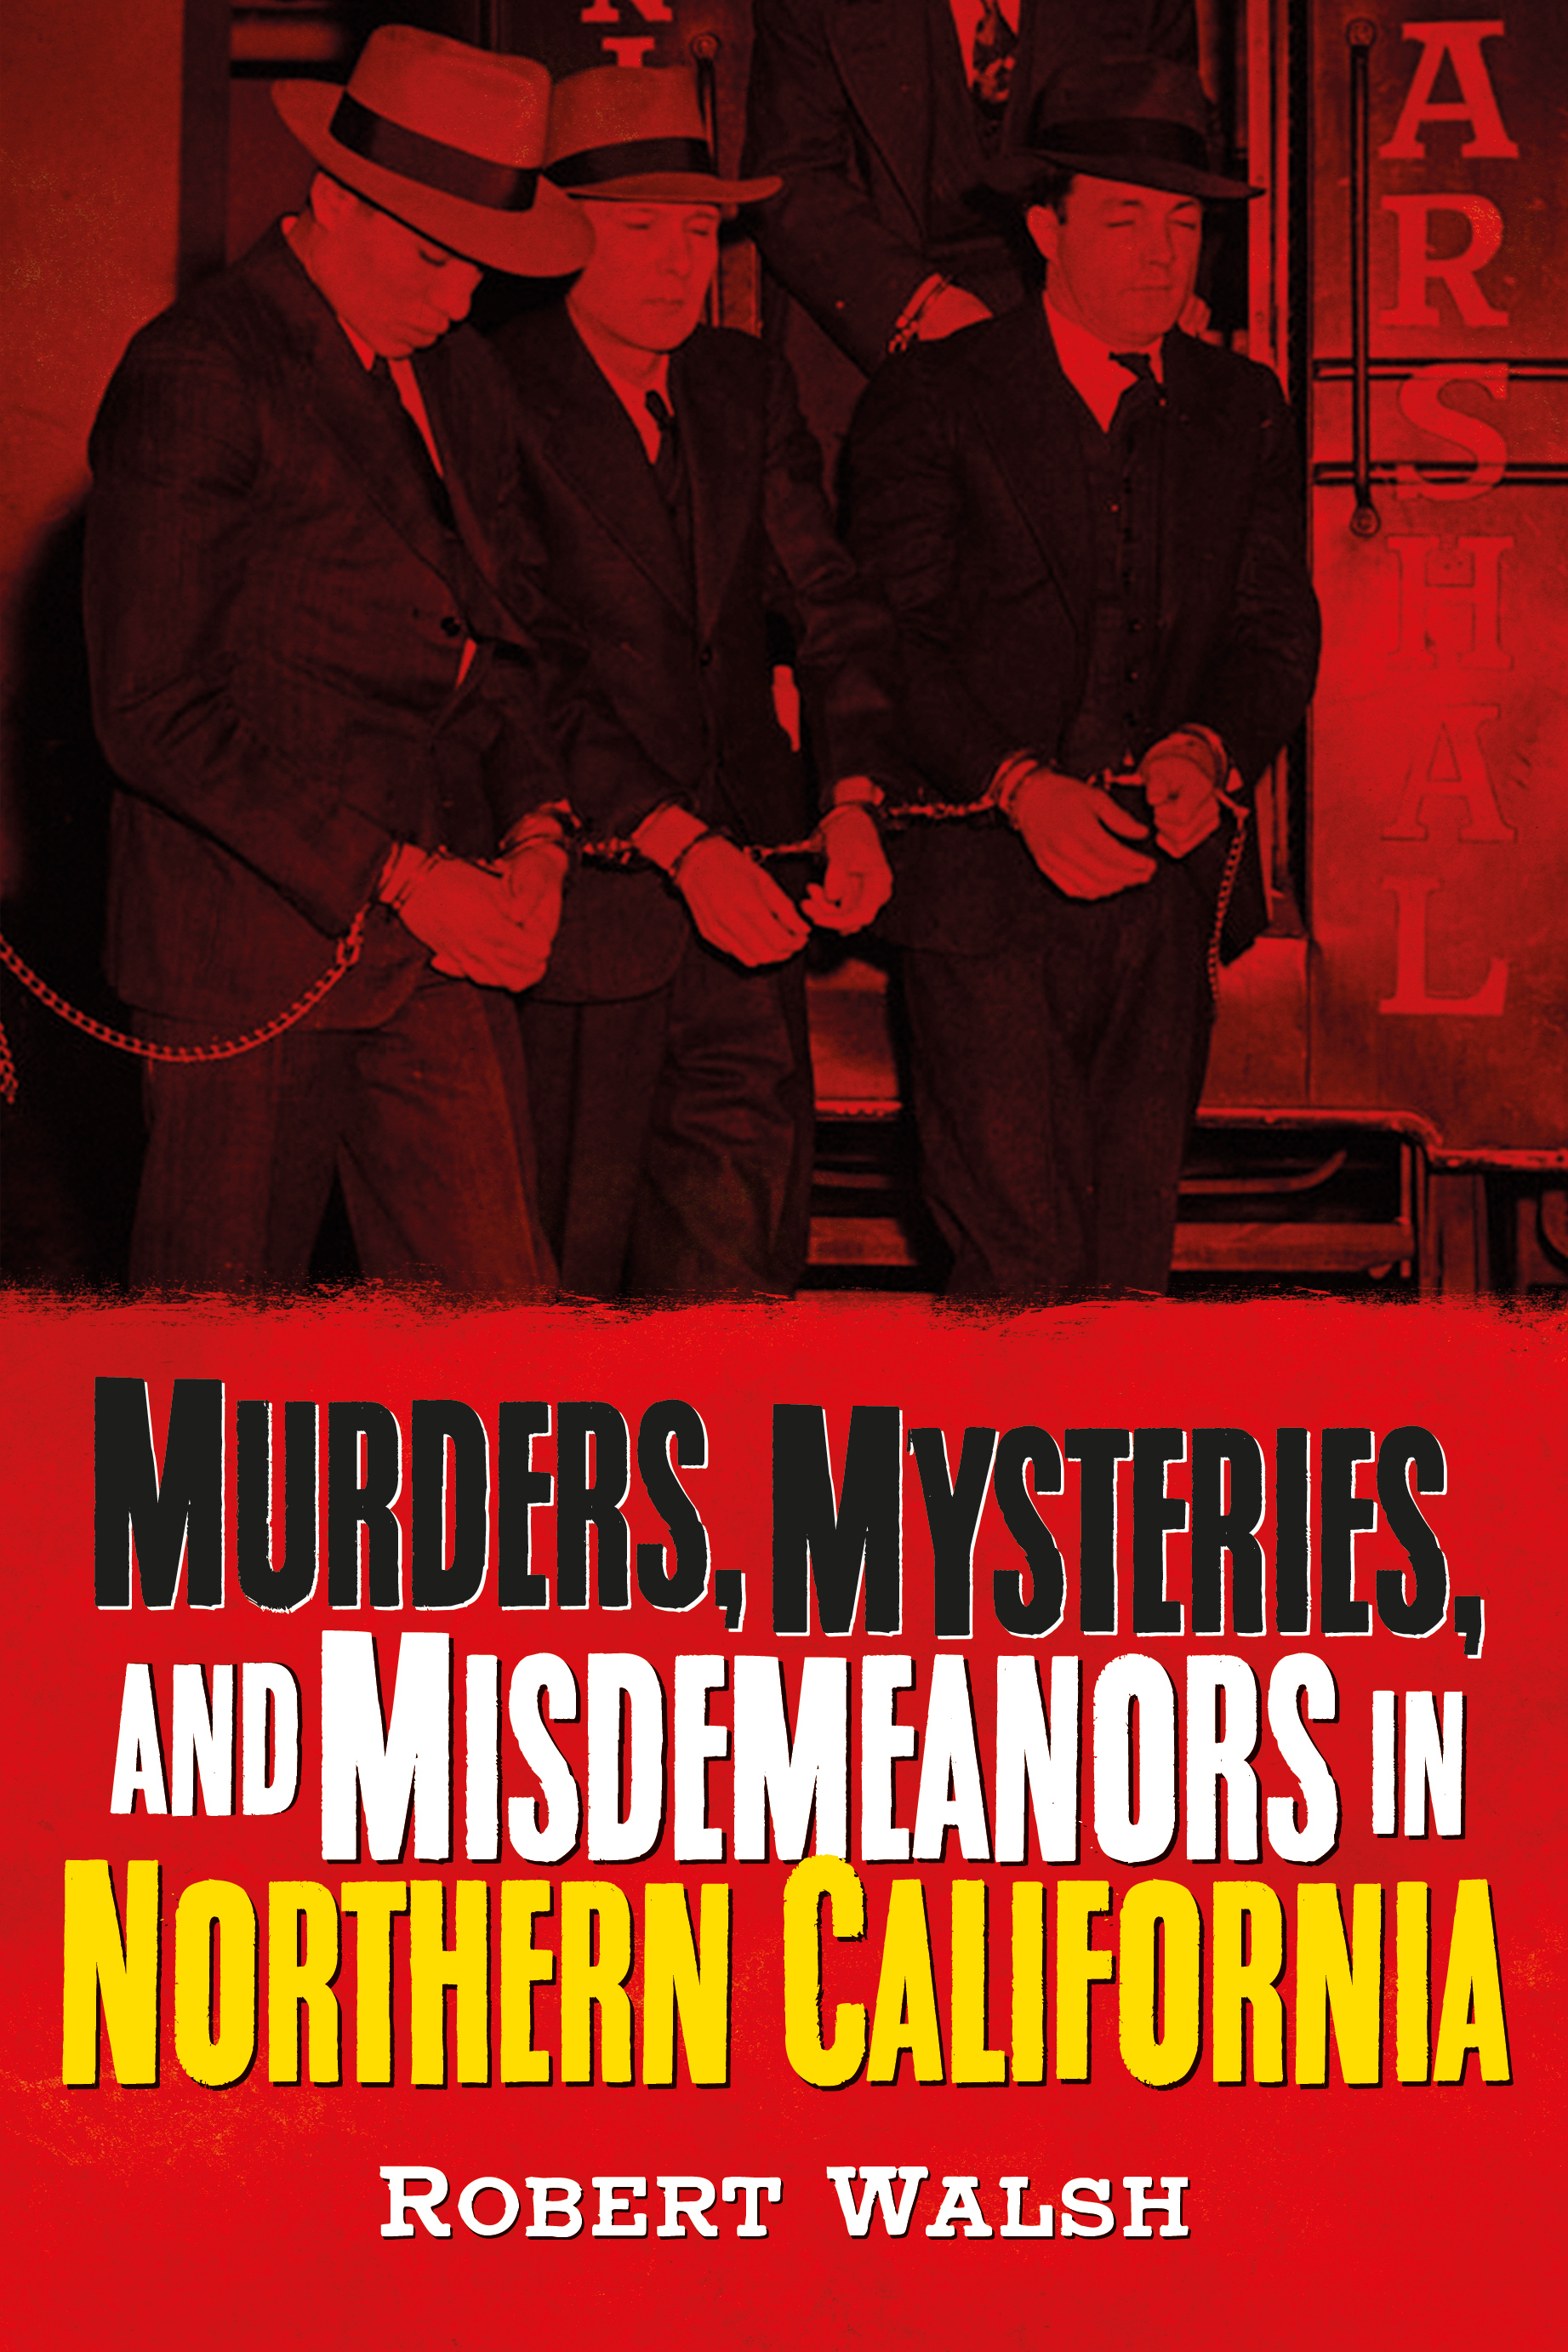 Murders, Mysteries, and Misdemeanors in Northern California